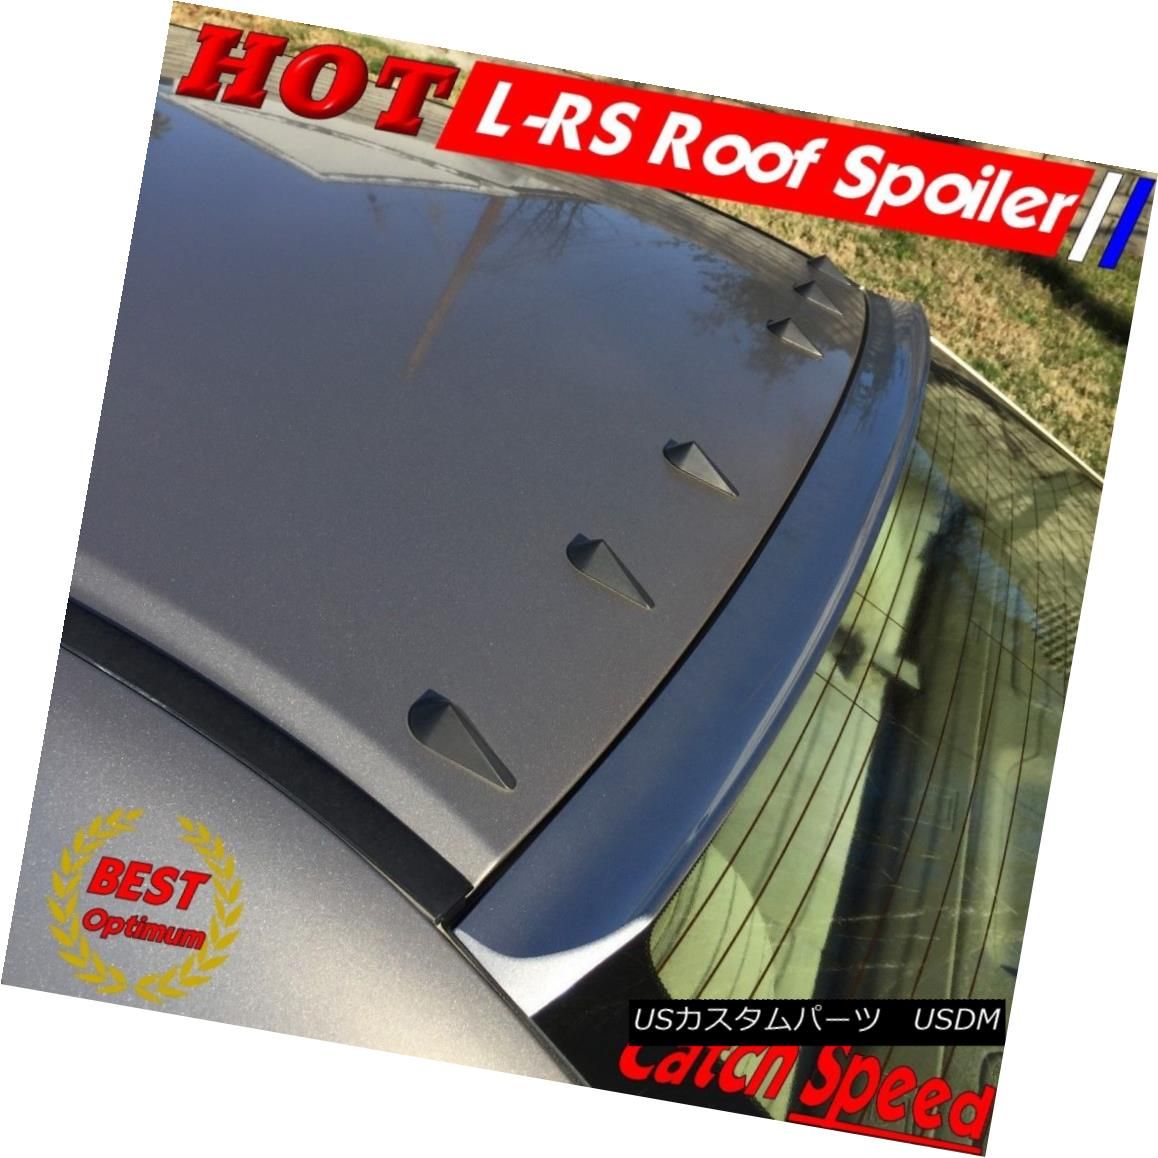 エアロパーツ Flat Black LRS Rear Roof Spoiler Wing For Honda CIVIC Insight Hatchback 2010-14? Honda CIVIC Insight Hatchback 2010-14のフラットブラックLRSリアルーフスポイラーウィング?